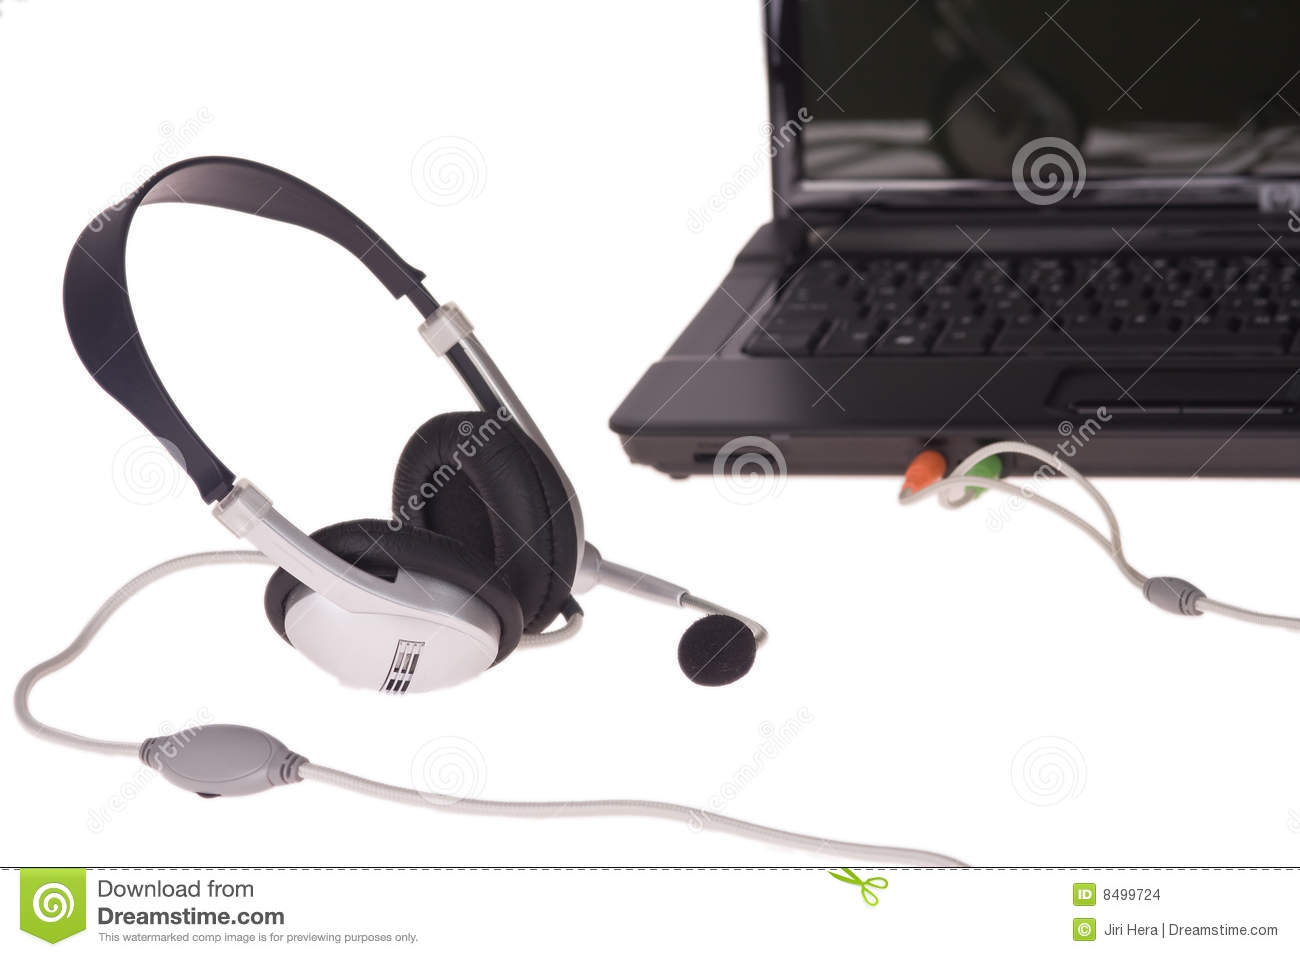 how to connect headset on laptop